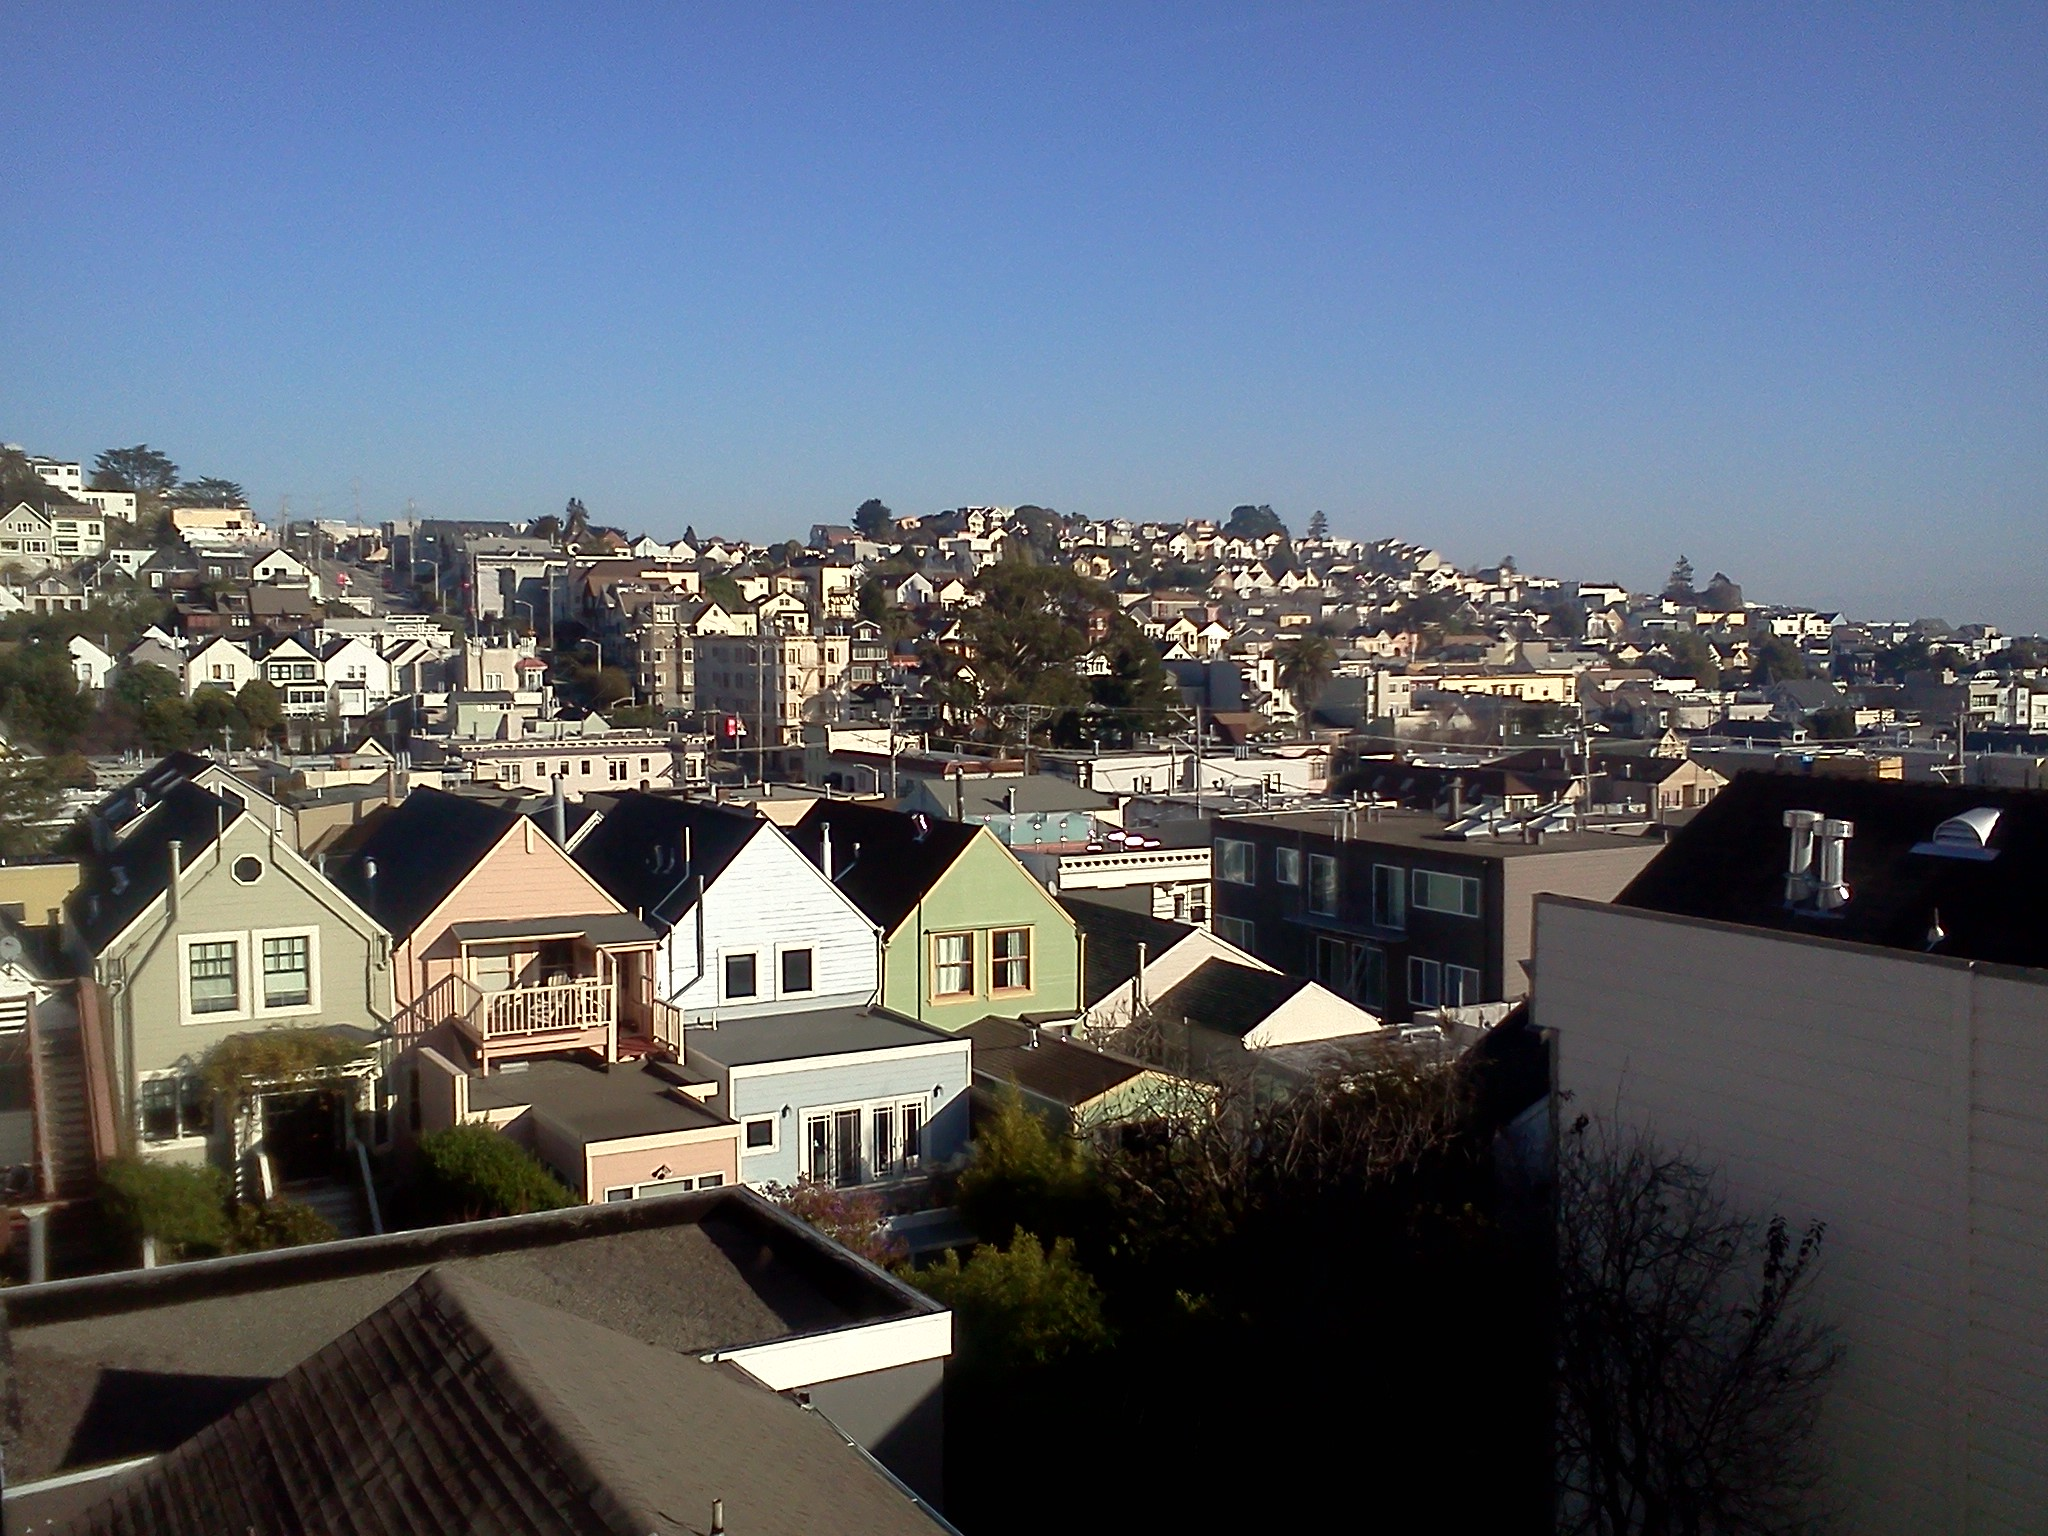 View from Noe Valley, January 2012